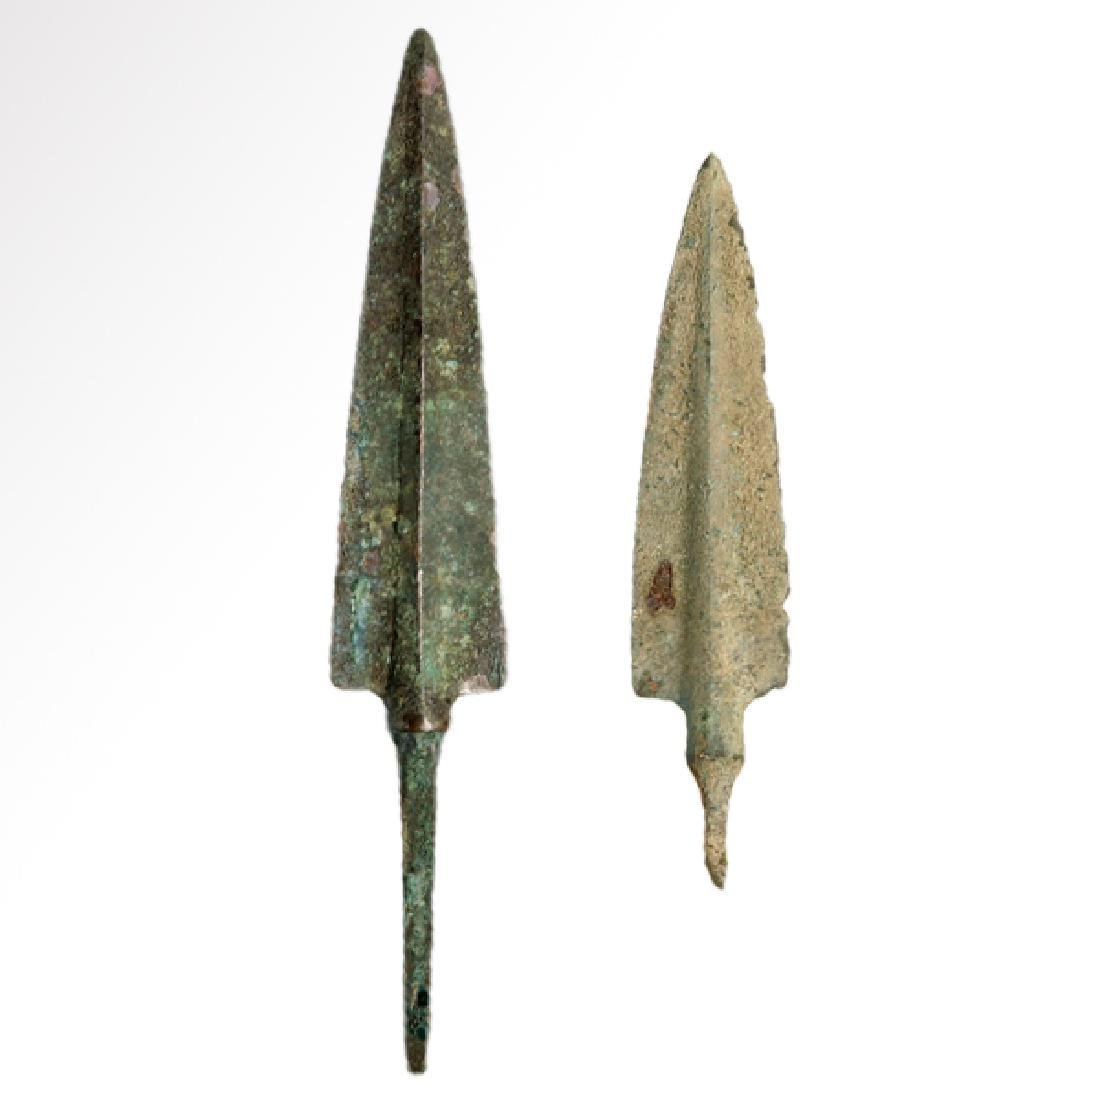 Two Bronze Spear-heads, Persia c. 1100-900 B.C.